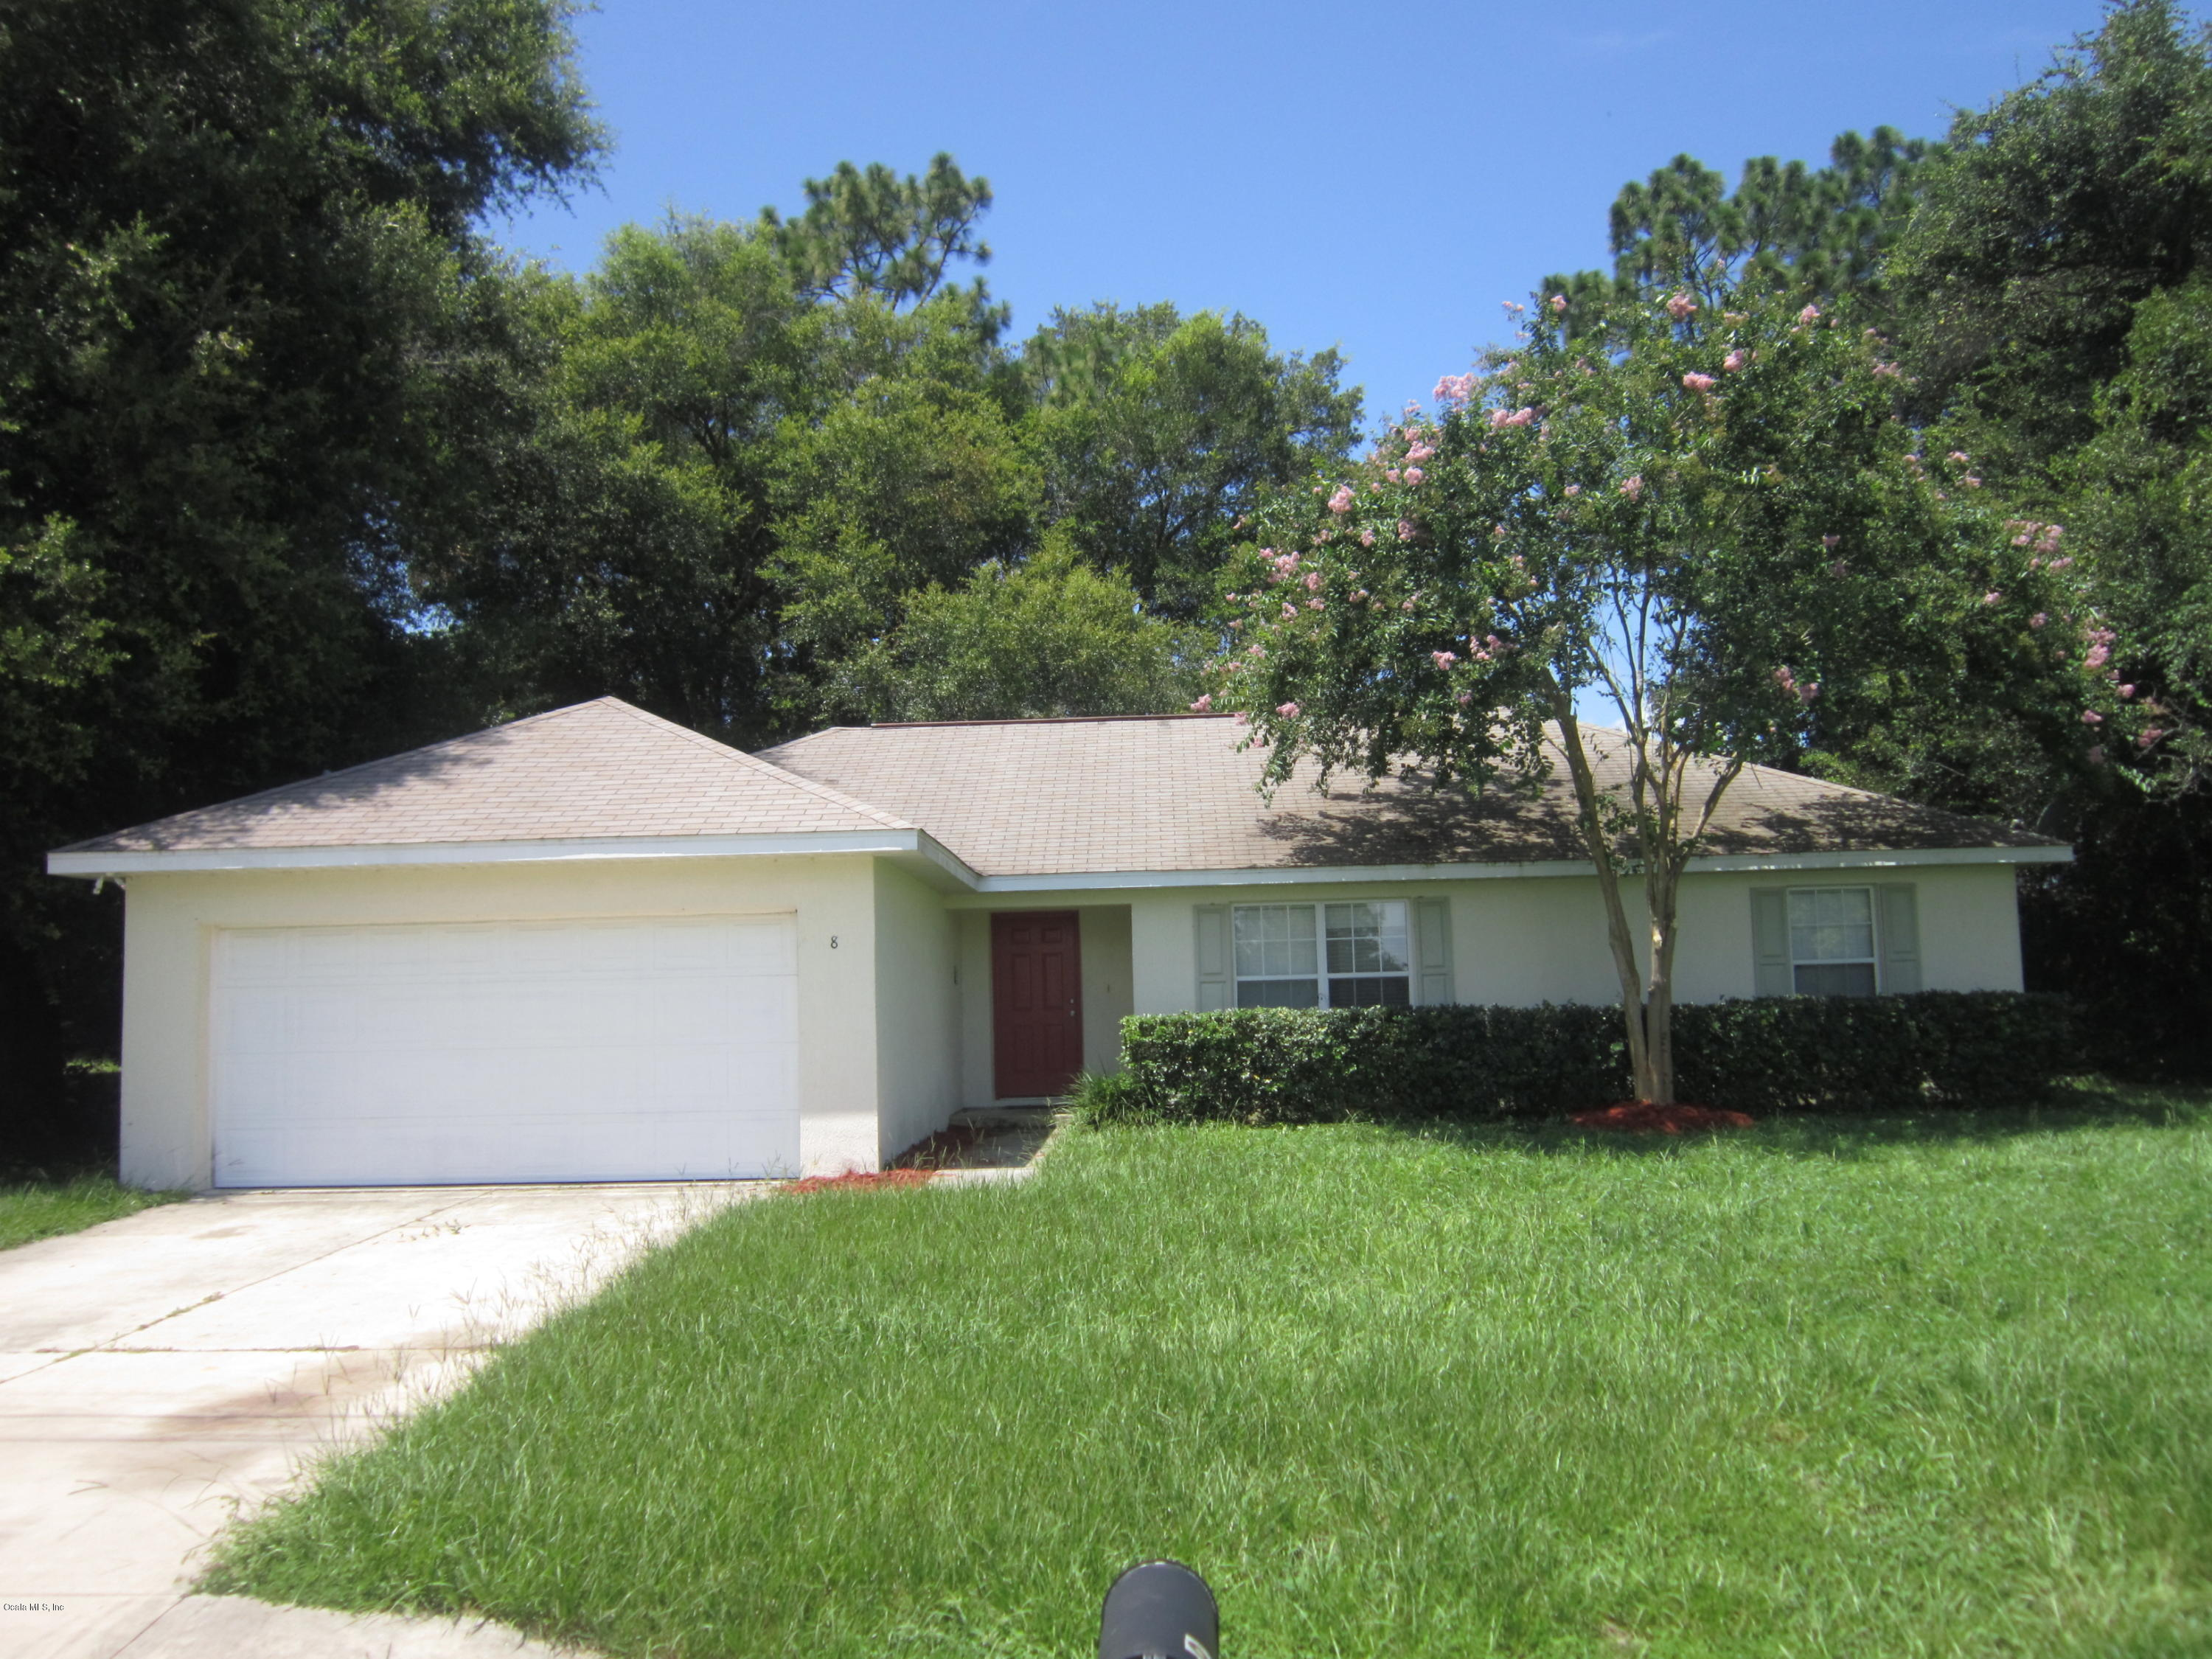 8 LARCH RUN COURT, OCALA, FL 34480